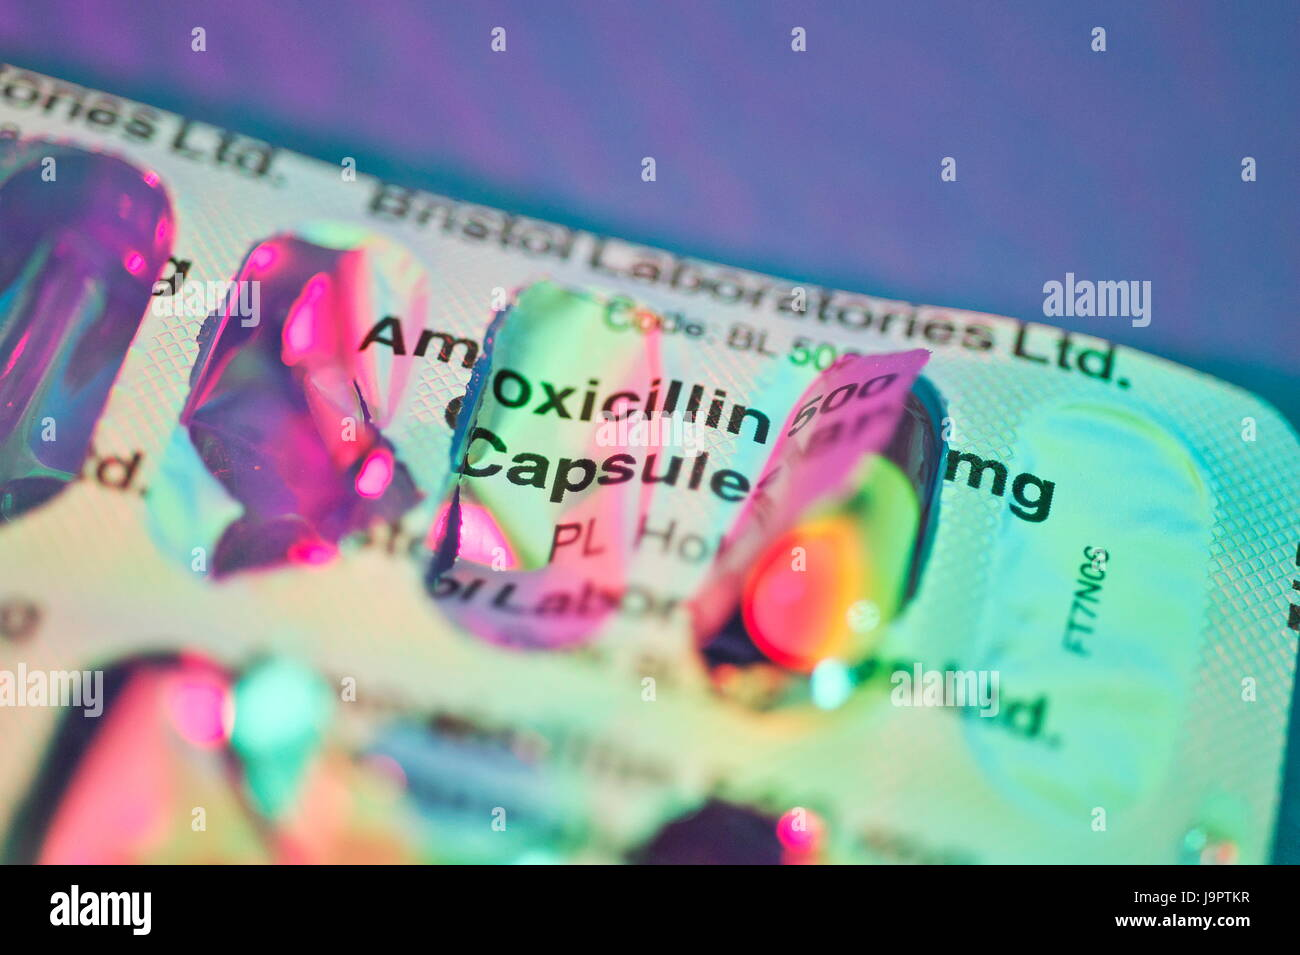 Still life dramatic lighting of Amoxicillin tablets in and out of packets, used for bacterial infections - Stock Image